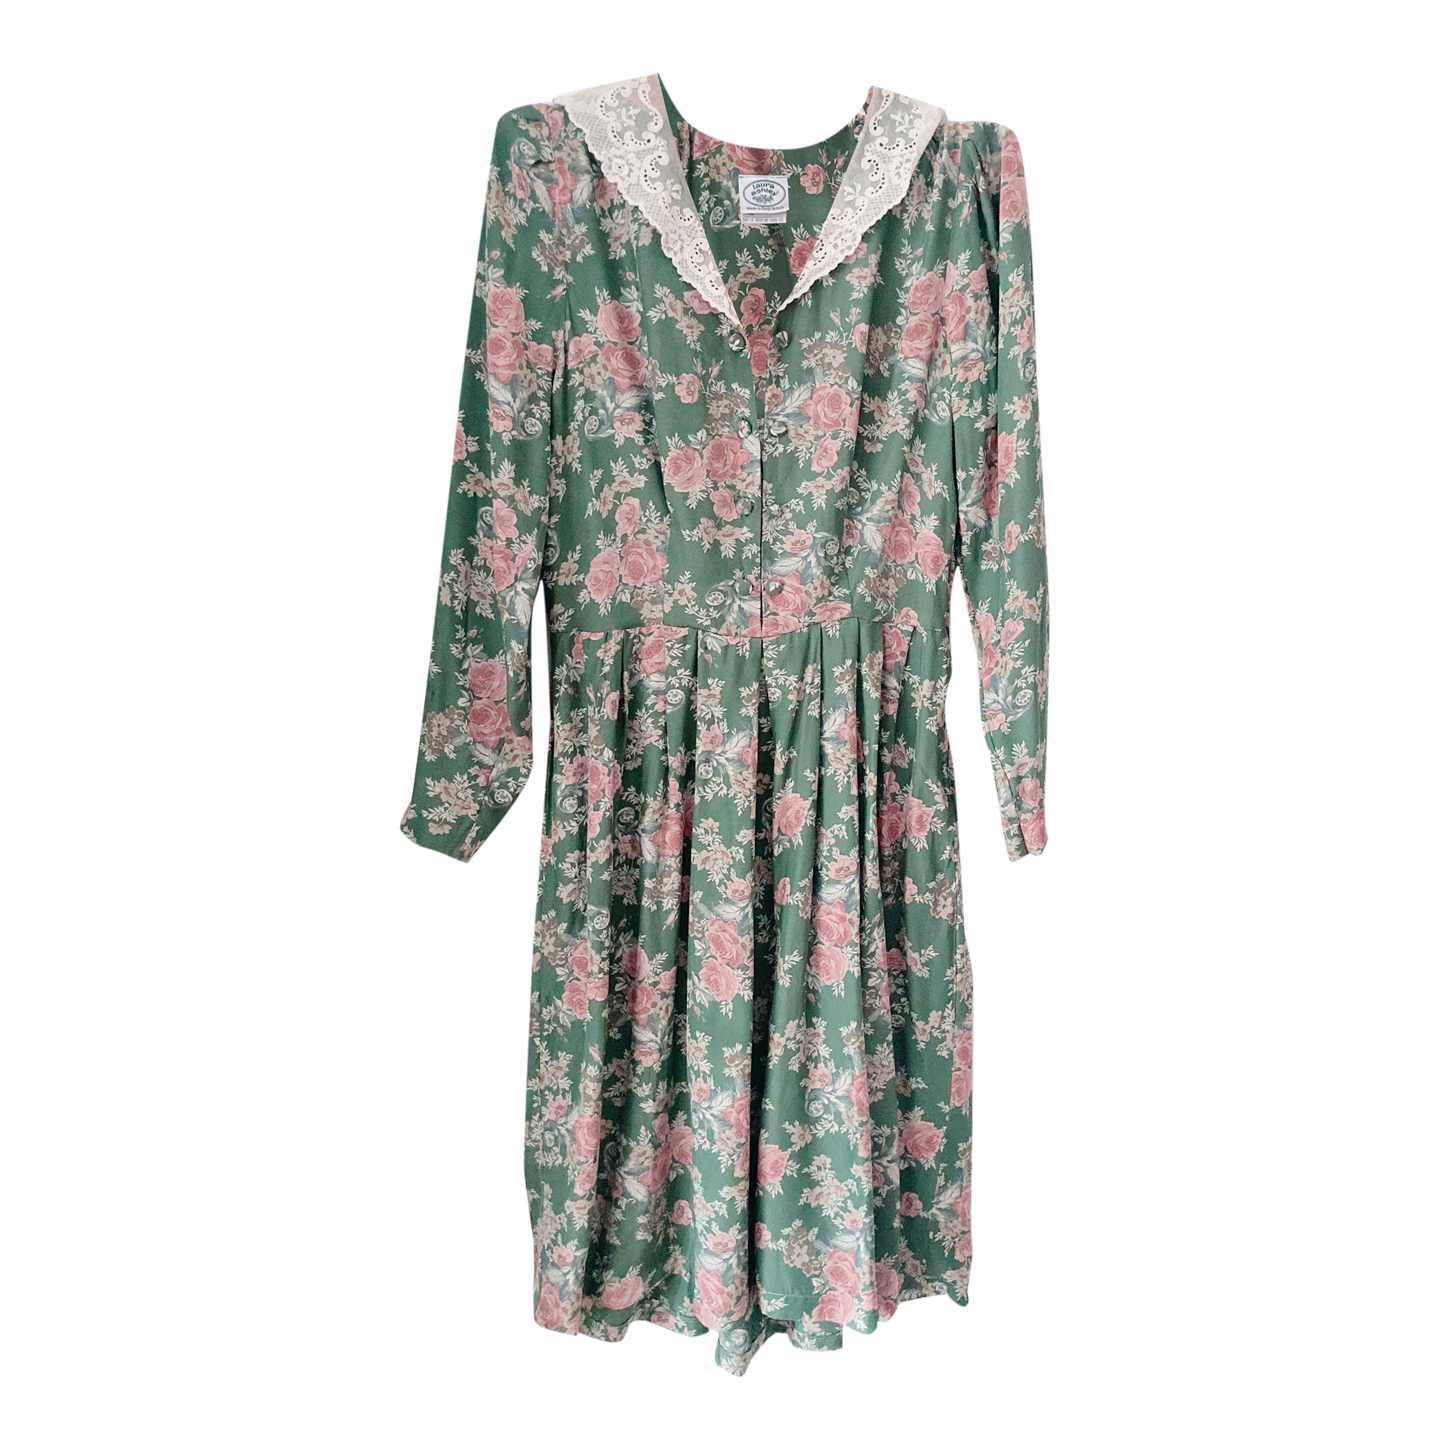 Robe Laura Ashley